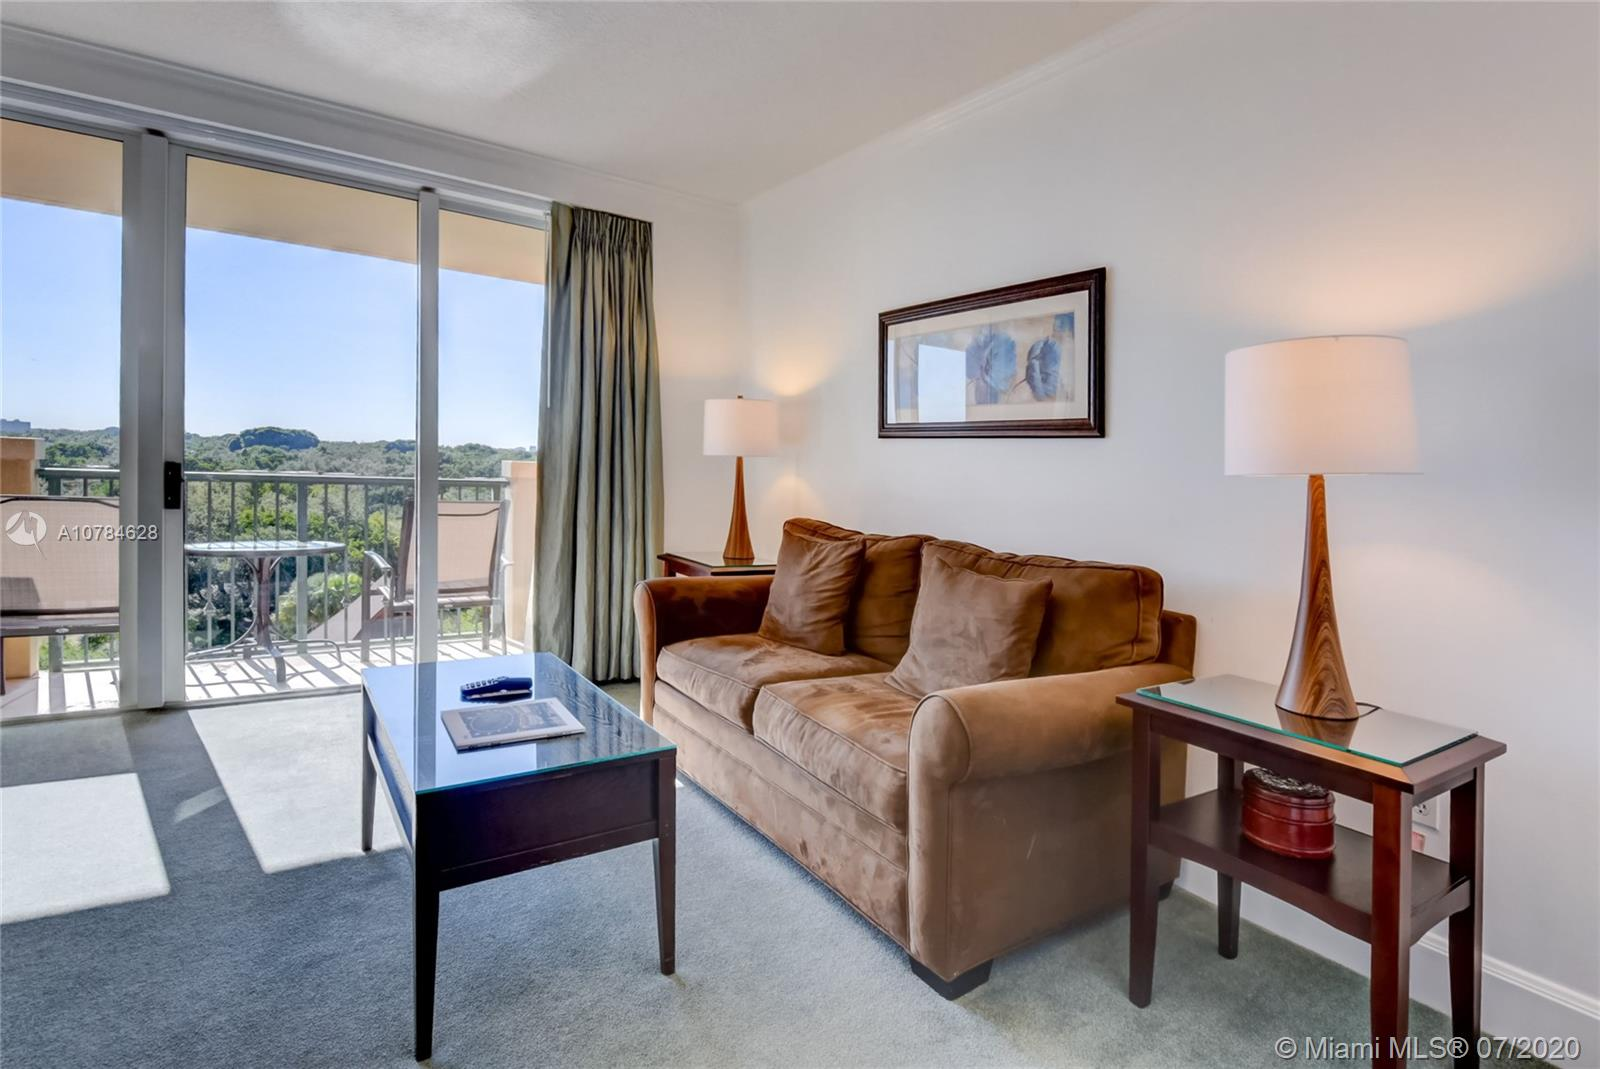 Beautifully appointed 1BR/1BA fully furnished unit in the iconic Mutiny Hotel, with incredible views of Sailboat Bay and Peacock Park.  Live in or join the on site rental program for immediate income with liberal owner use policy. Unit is currently in the hotel program and previous year's income is available upon request. The Mutiny features an onsite restaurant and bar with room service, a gym with sauna and steam room, 24 hour security and front desk, concierge, complimentary valet or self parking, and more. The Mutiny is just steps away from the heart of Coconut Grove and all of the shops, restaurants, and night life. Please visit the following link for a 360° Virtual Tour of this property